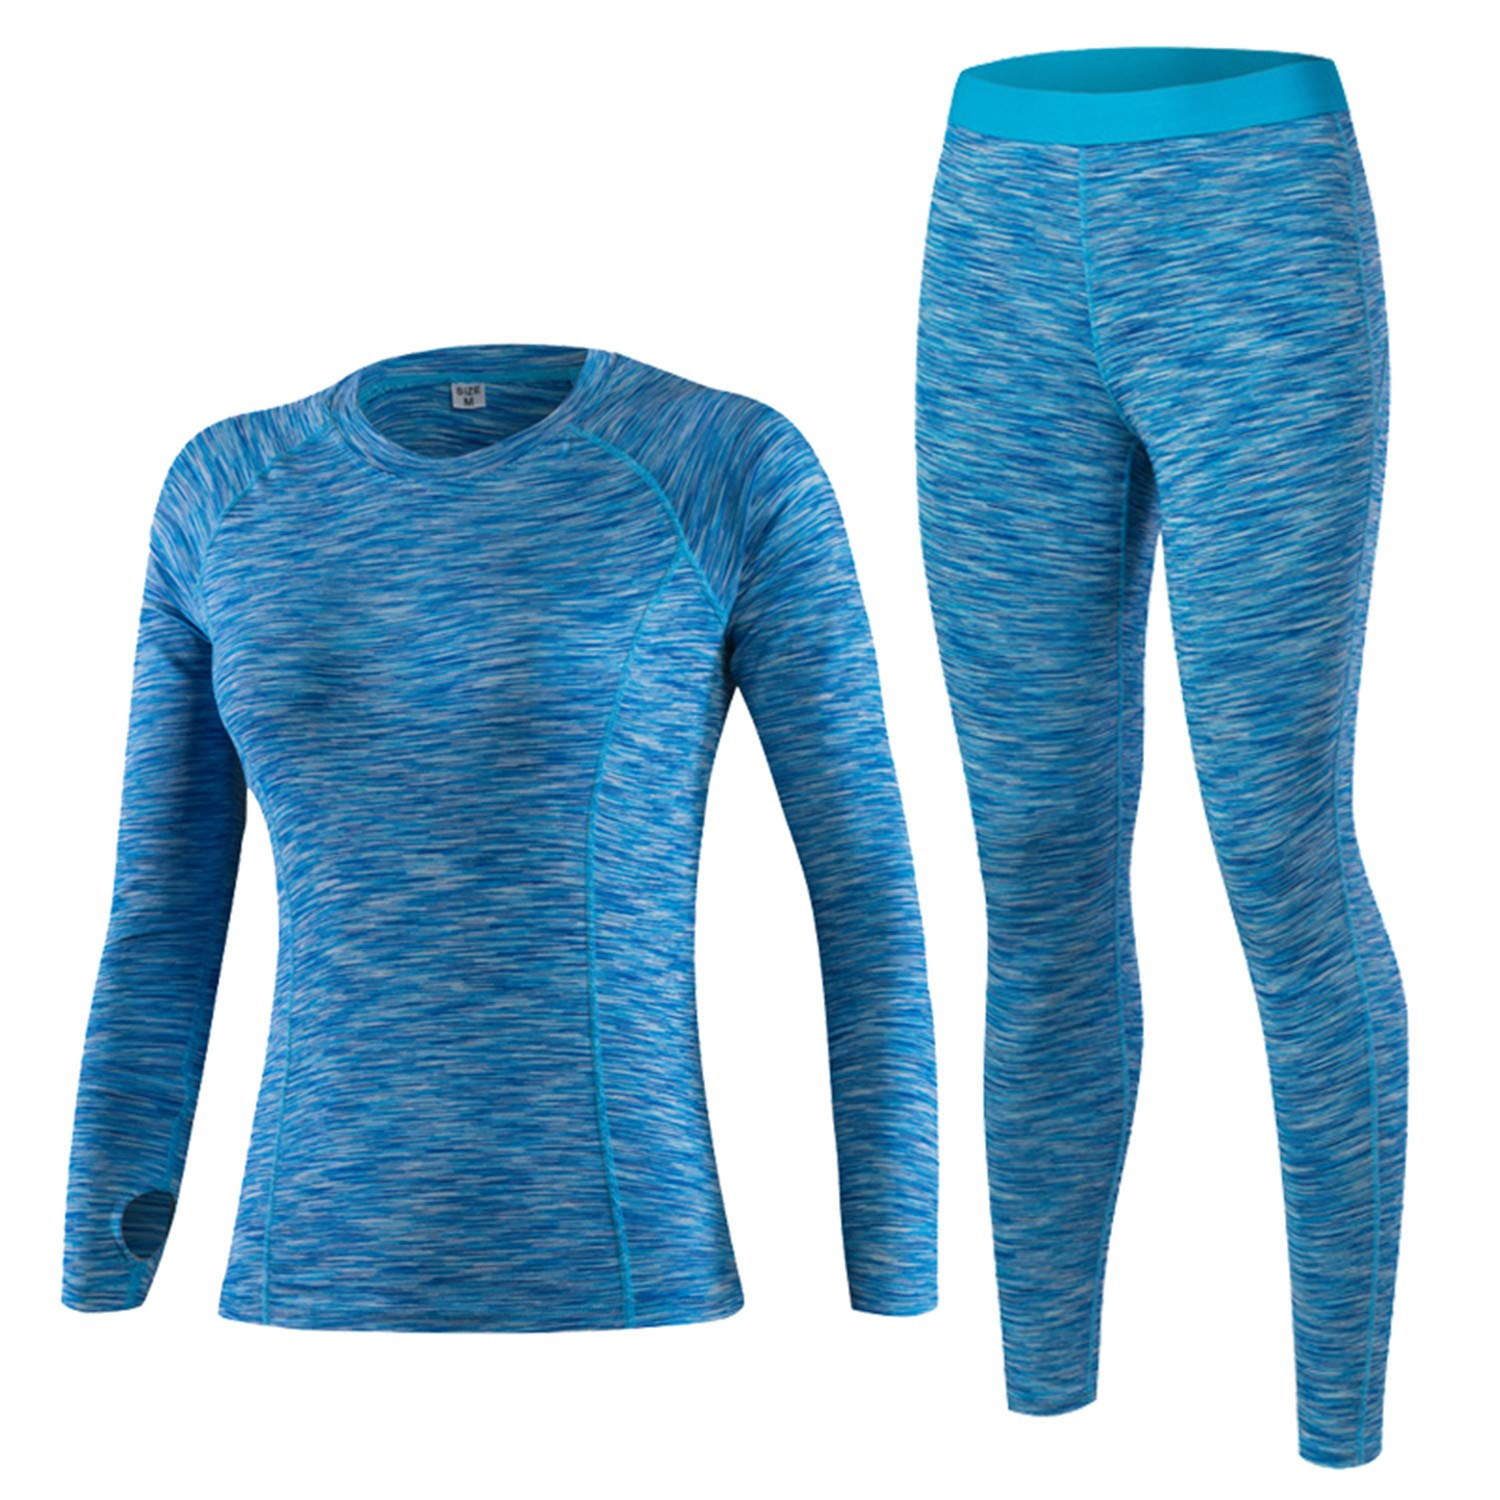 Thermal Underwear Women Winter Quick Dry Anti-Microbial Stretch Thermo Underwear Sets Female Warm Long HI-Q